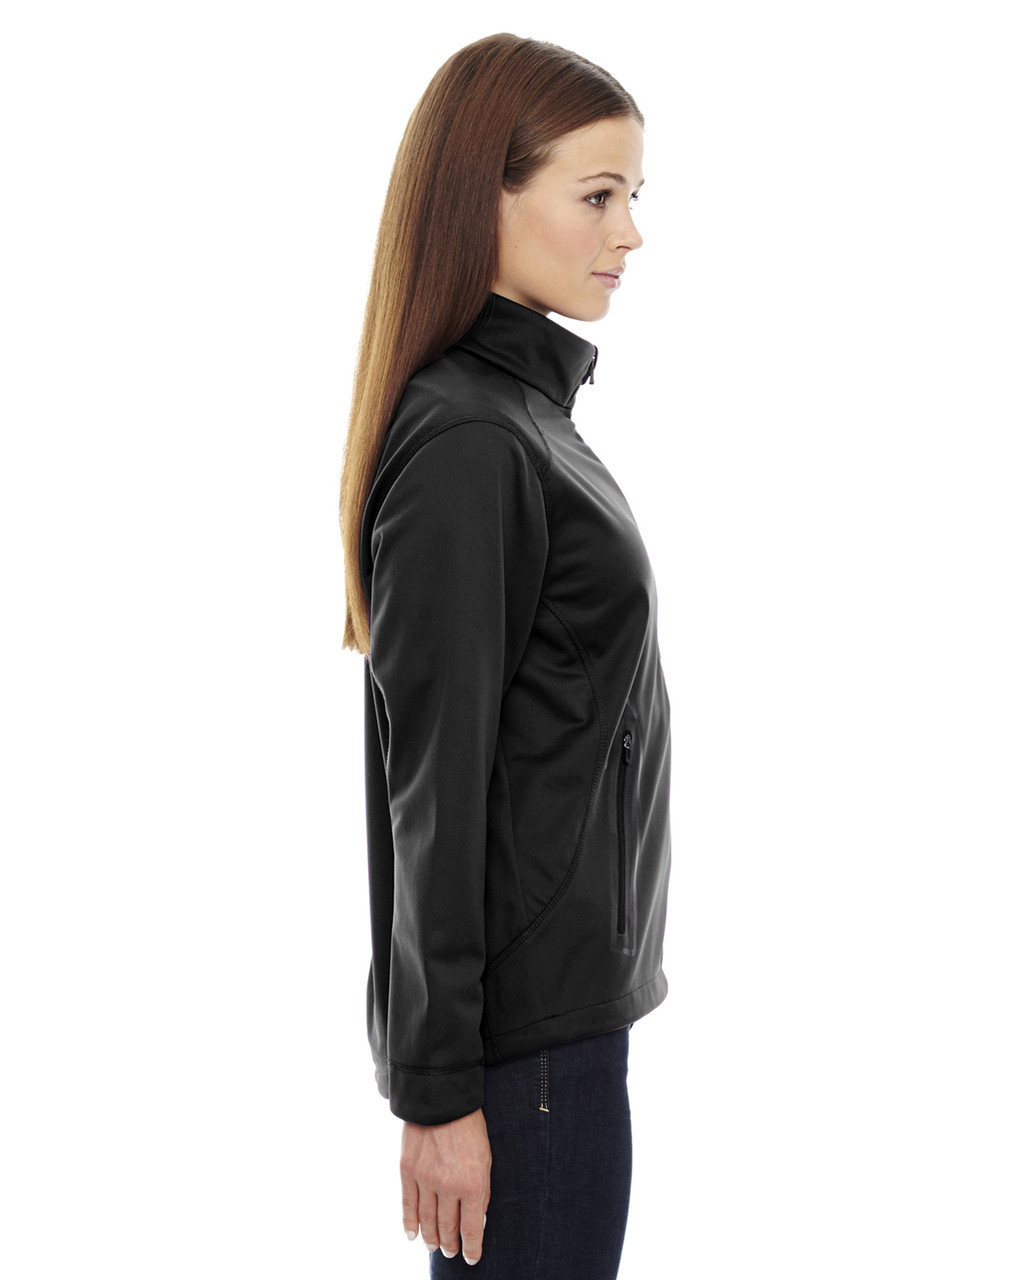 Black-side 78655 North End Sport Red Splice Three-Layer Light Bonded Soft Shell Jacket